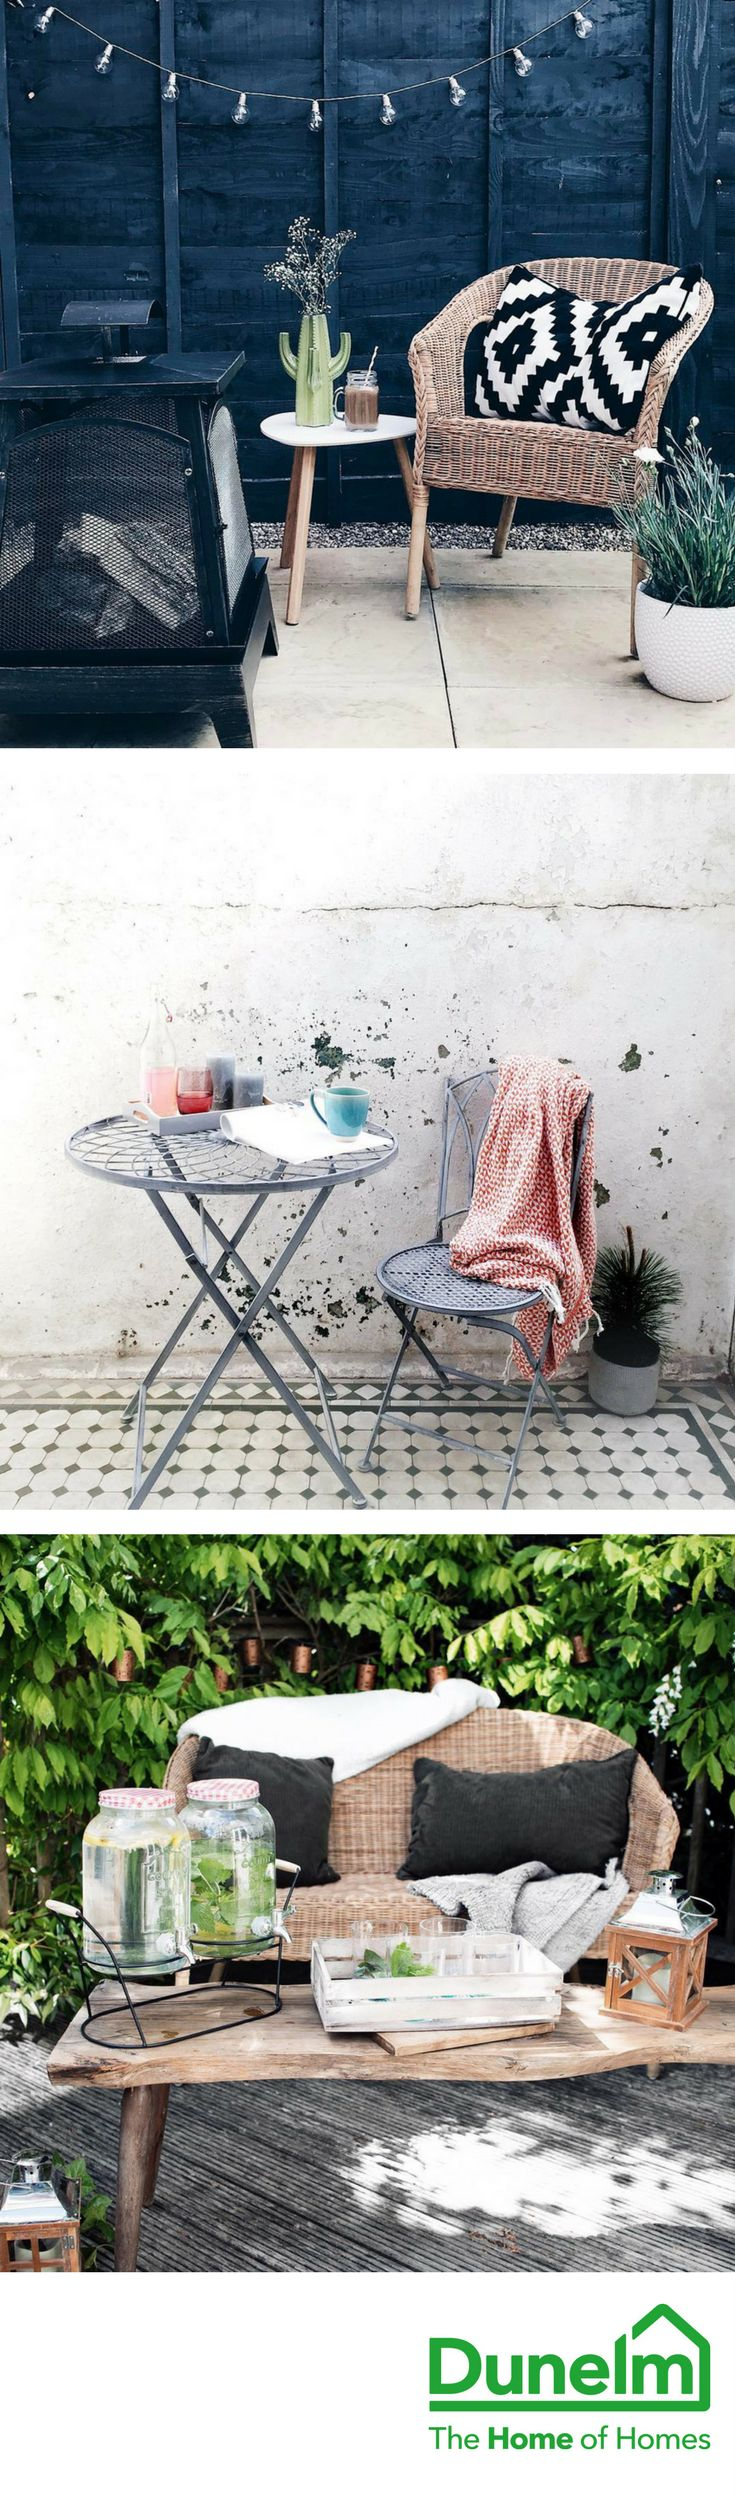 LIFE'S BETTER OUTDOORS | Maximise the fun this summer with our wide range of garden furniture and accessories. From two piece bistro sets and urban outdoor lighting, to outdoor dining sets and chimineas, you can make the most of your outdoor space, whatev https://noahxnw.tumblr.com/post/160711524941/hairstyle-ideas